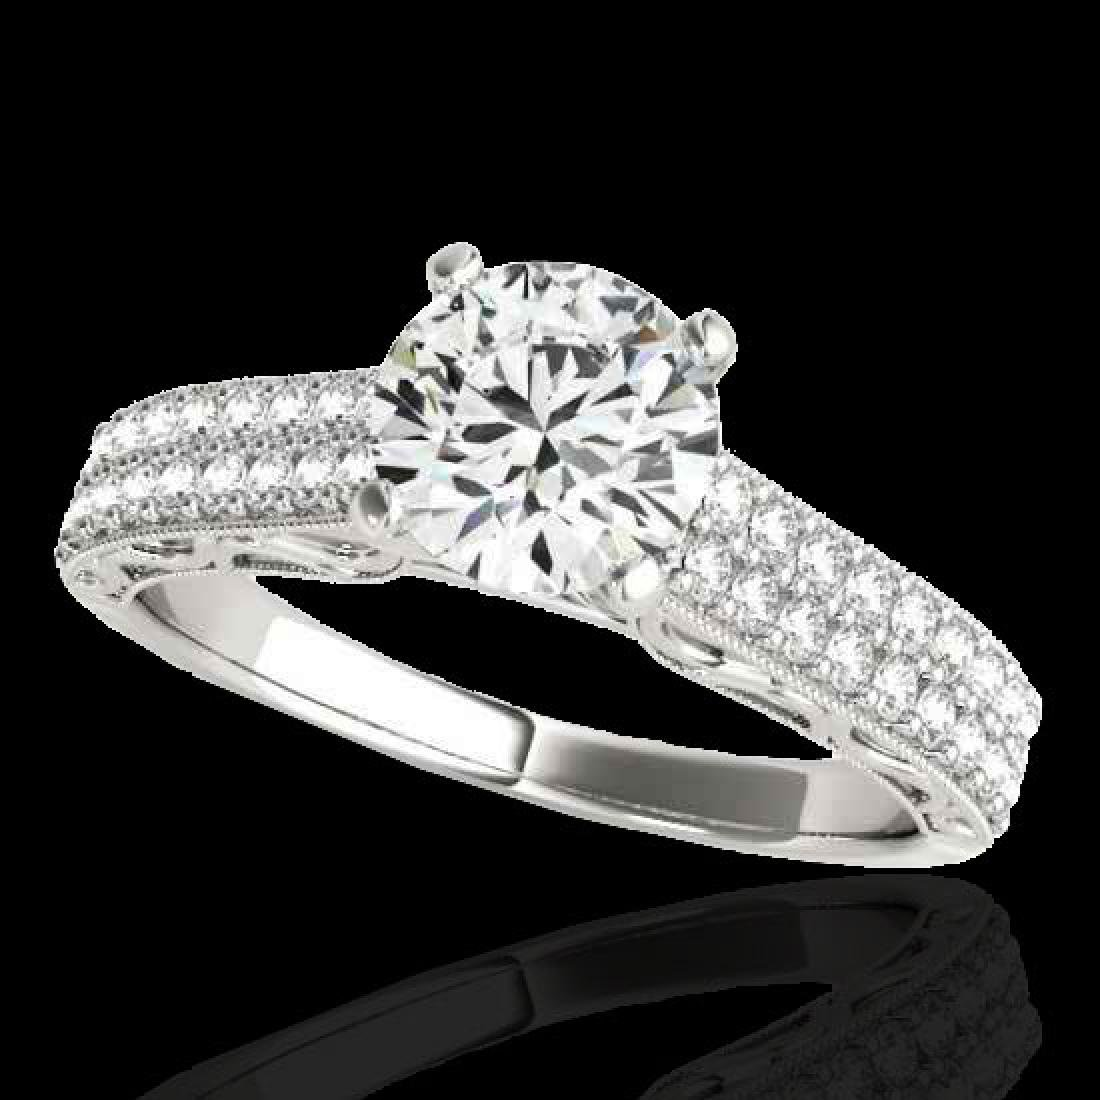 1.91 CTW H-SI/I Certified Diamond Solitaire Antique